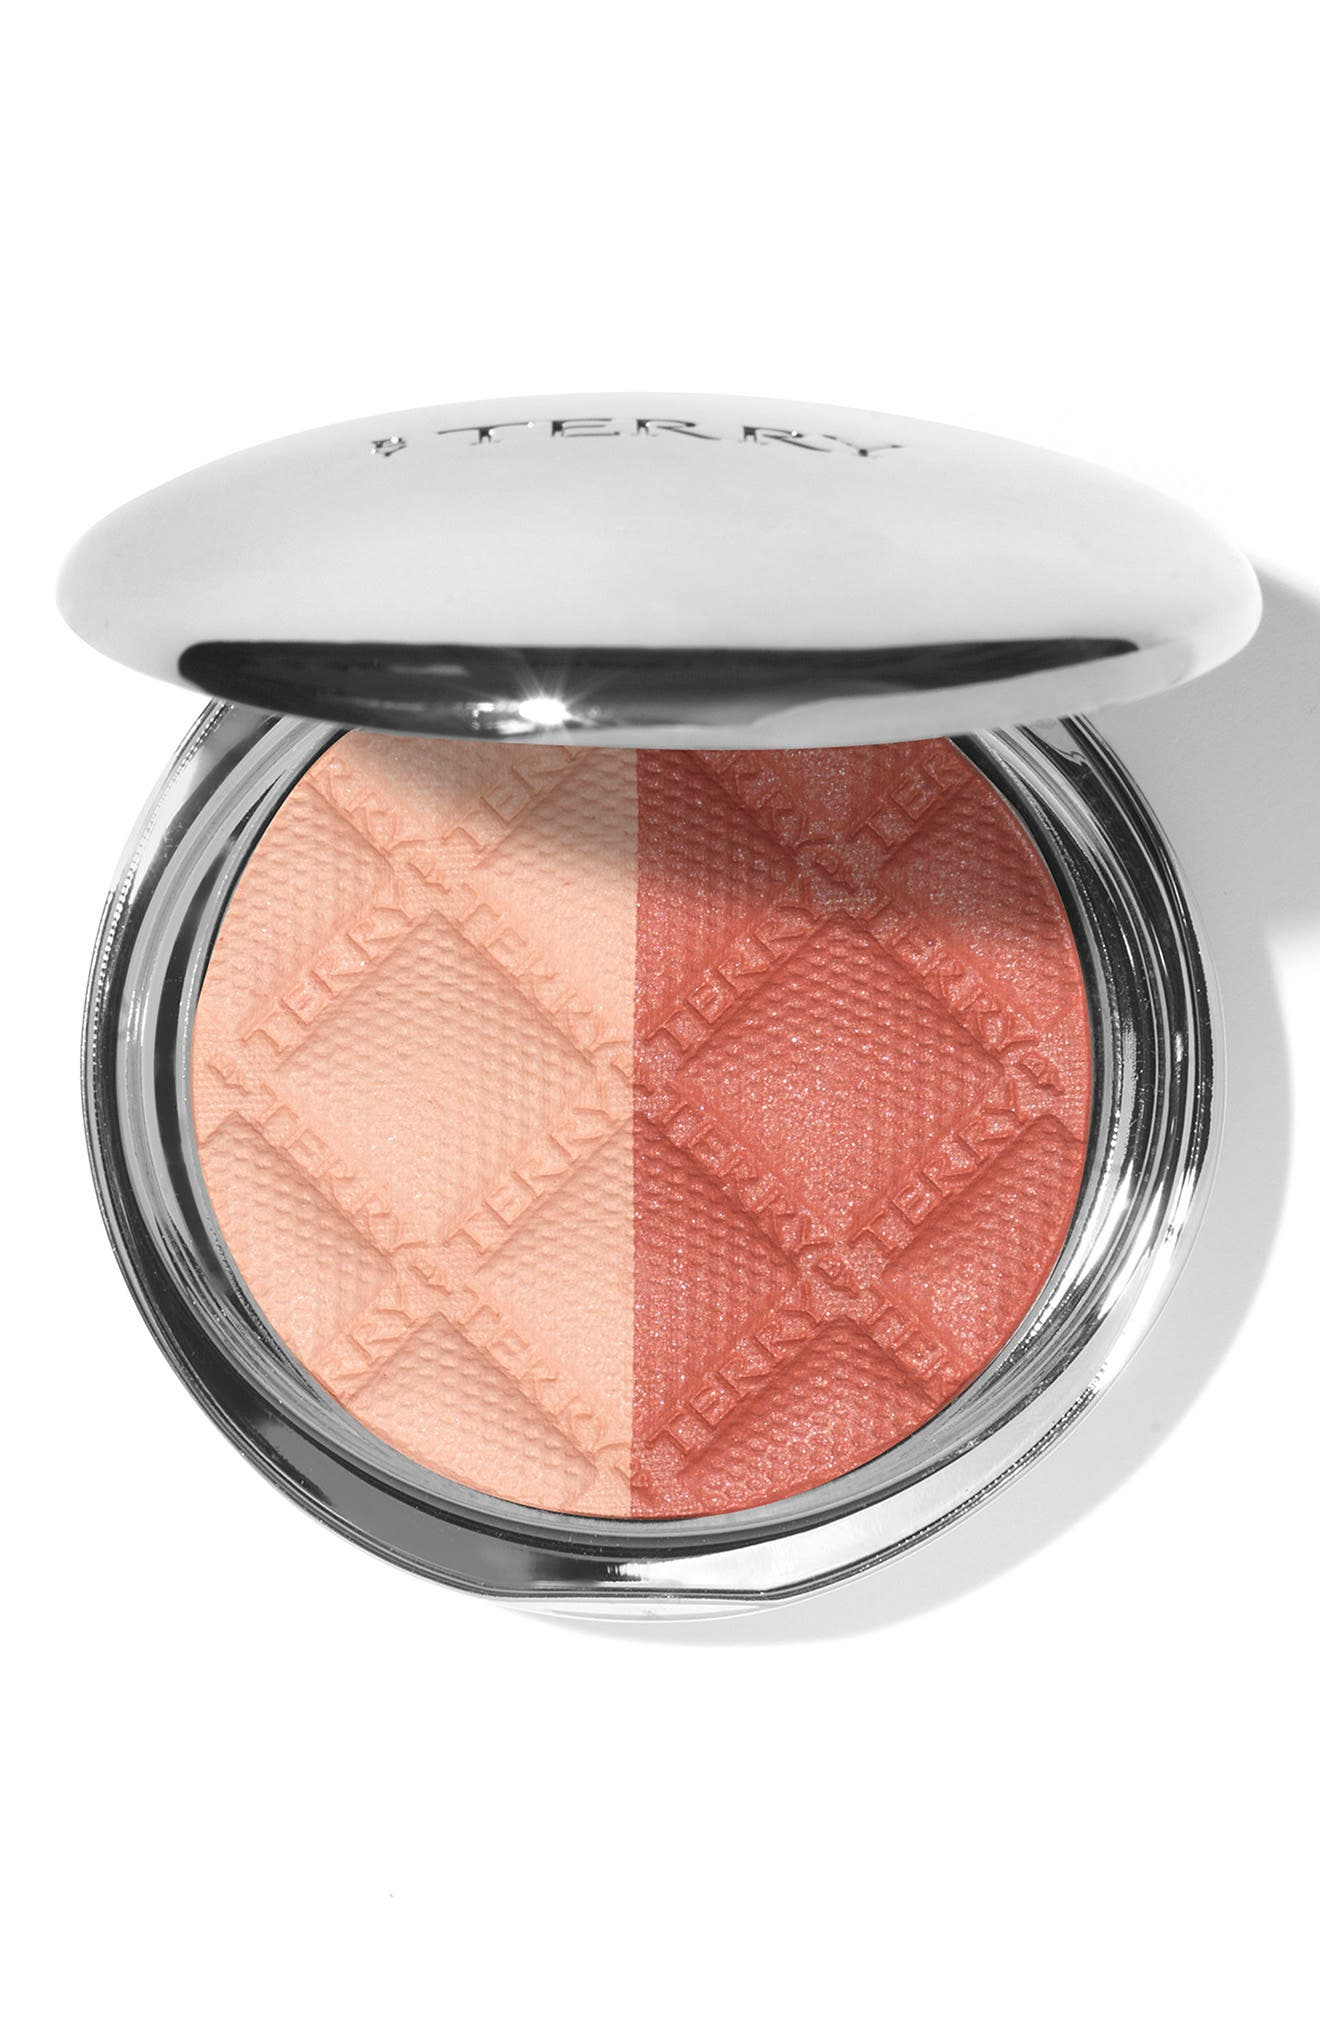 SPACE.NK.apothecary By Terry Terrybly Densiliss<sup>®</sup> Blush Contouring Compact,                         Main,                         color, 400 Rosy Shape